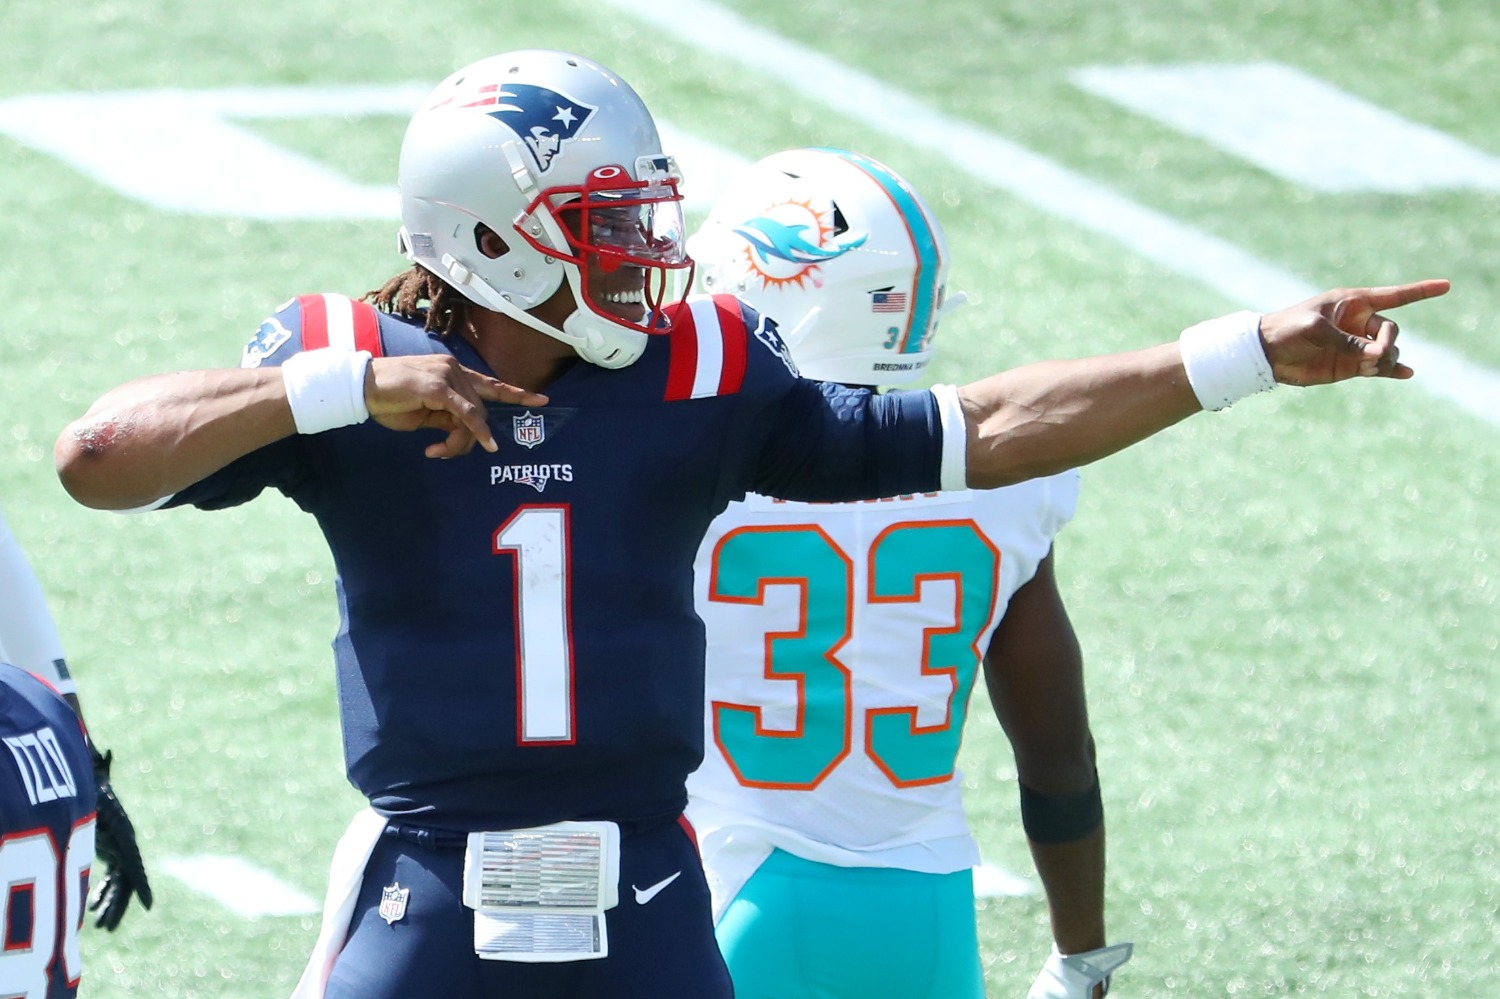 The New England Patriots sent a terrifying message to the rest of the NFL that their dynasty is far from over as long as Cam Newton stays healthy.